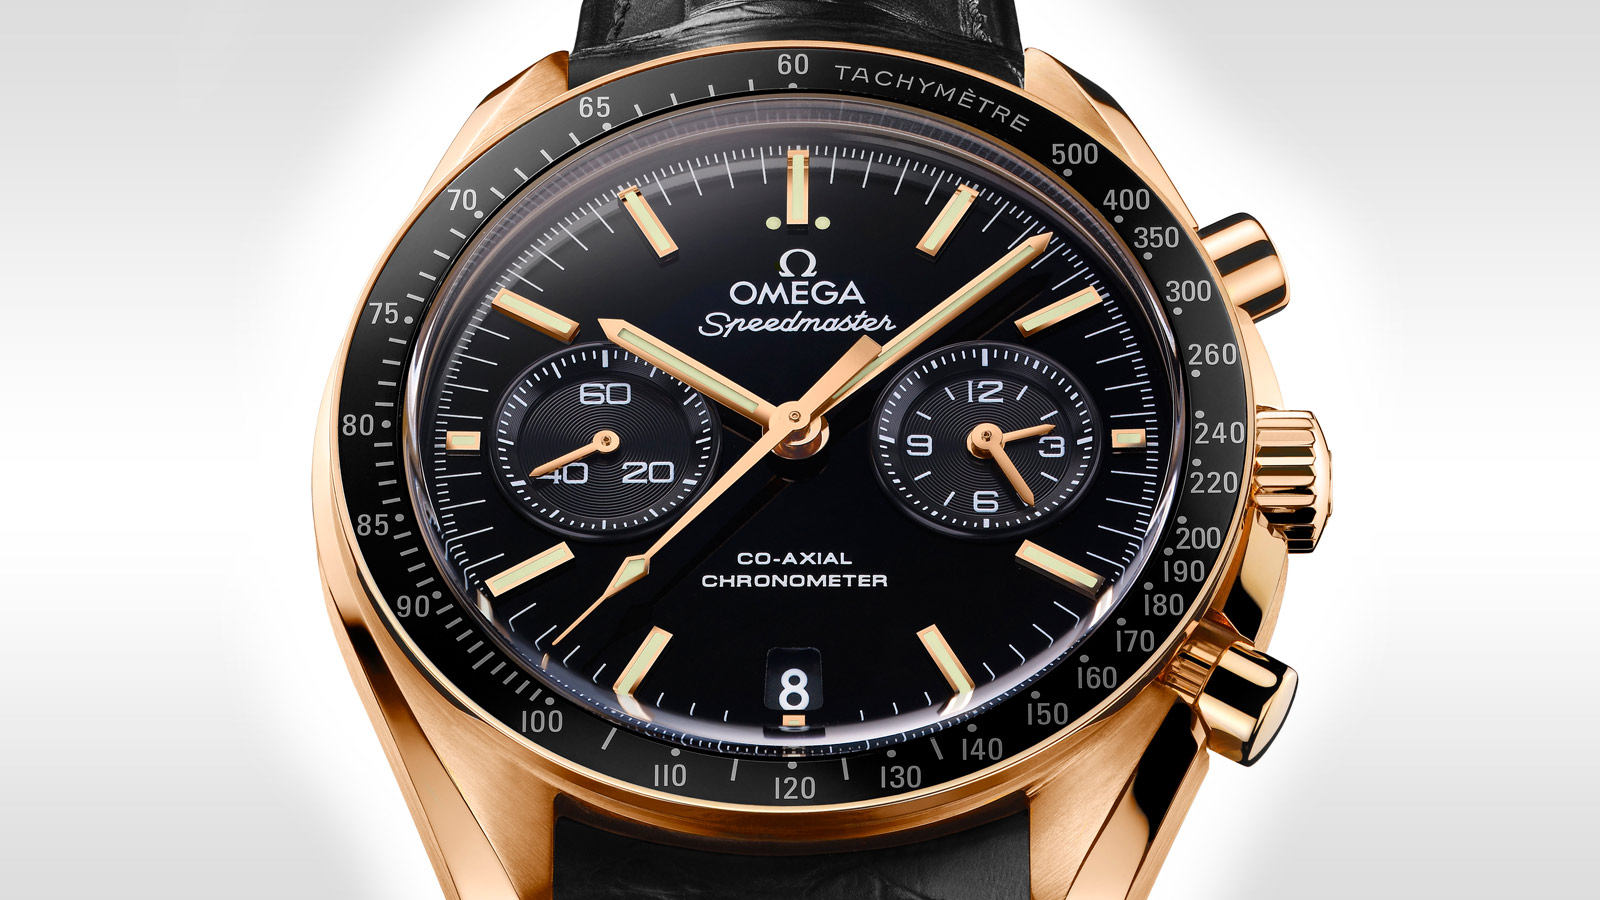 Speedmaster Moonwatch Moonwatch Chronographe Omega Co‑Axial 44,25 mm - 311.63.44.51.01.001 - Afficher 1